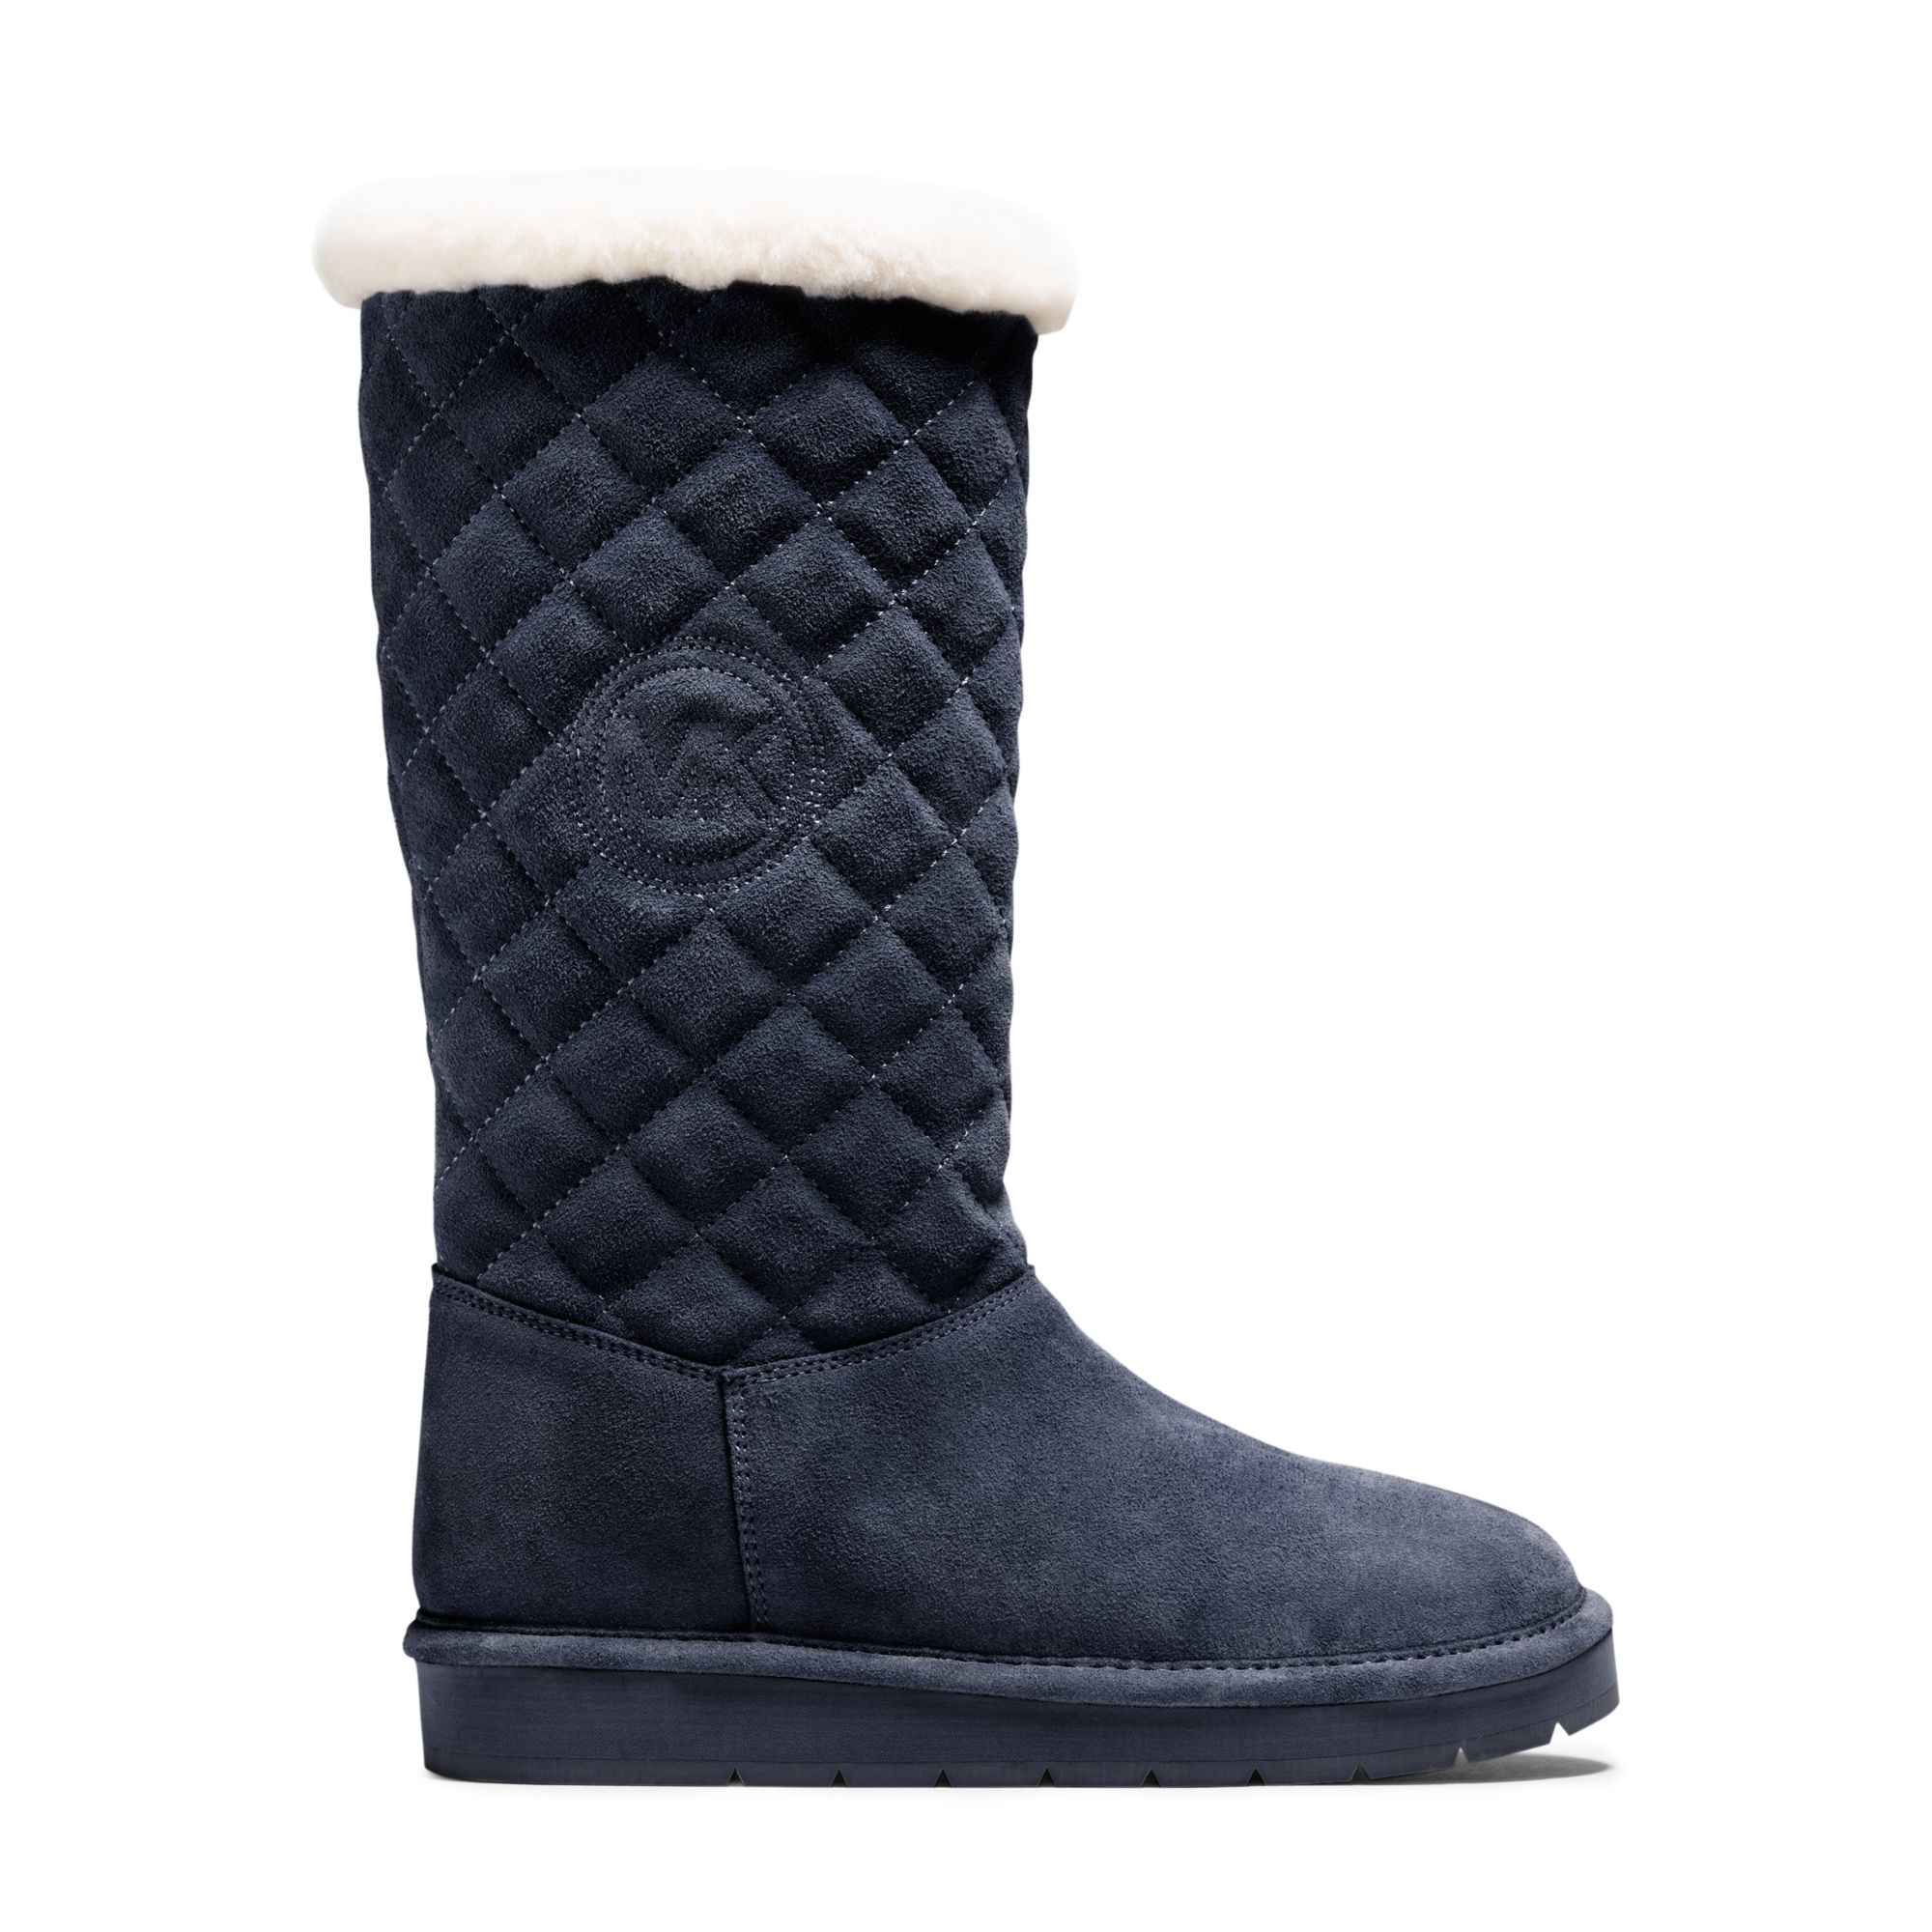 michael kors quilted suede boot in blue navy